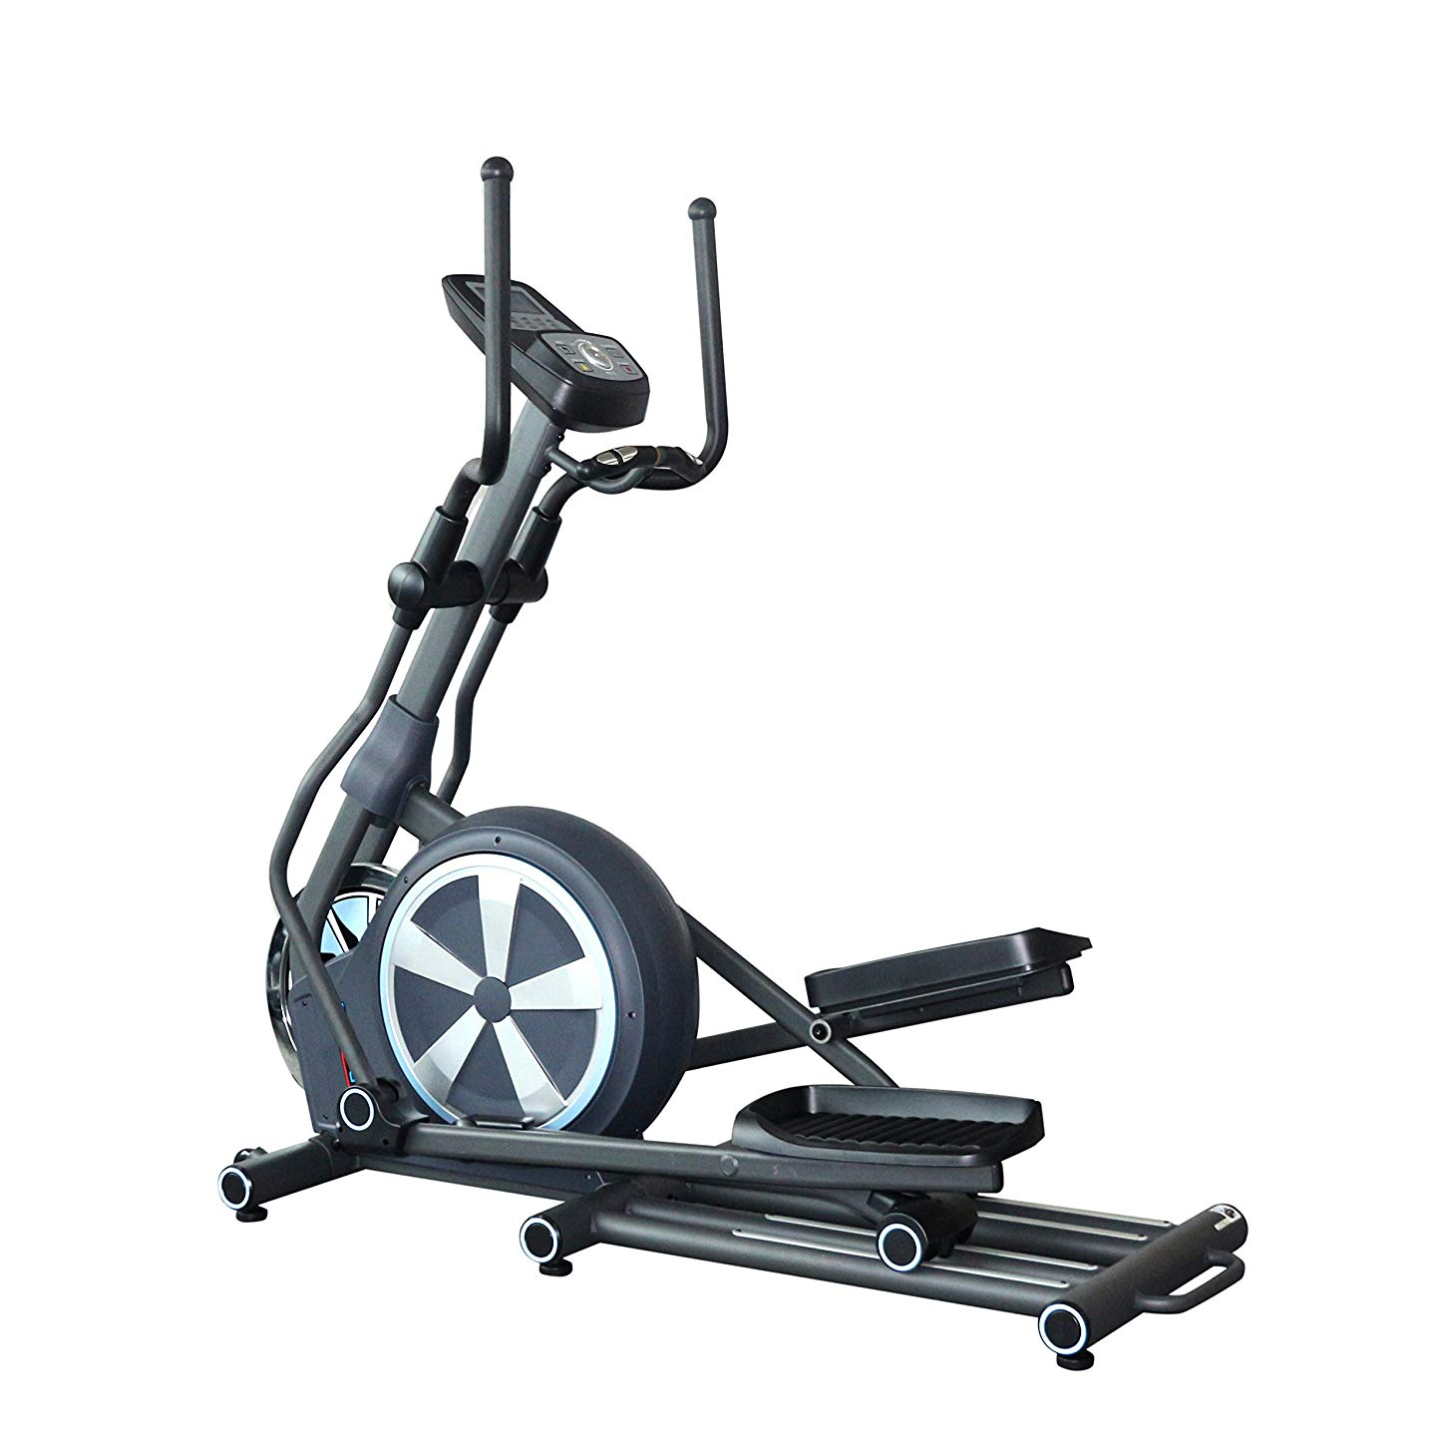 PROLINE 61700E ELLIPTICAL